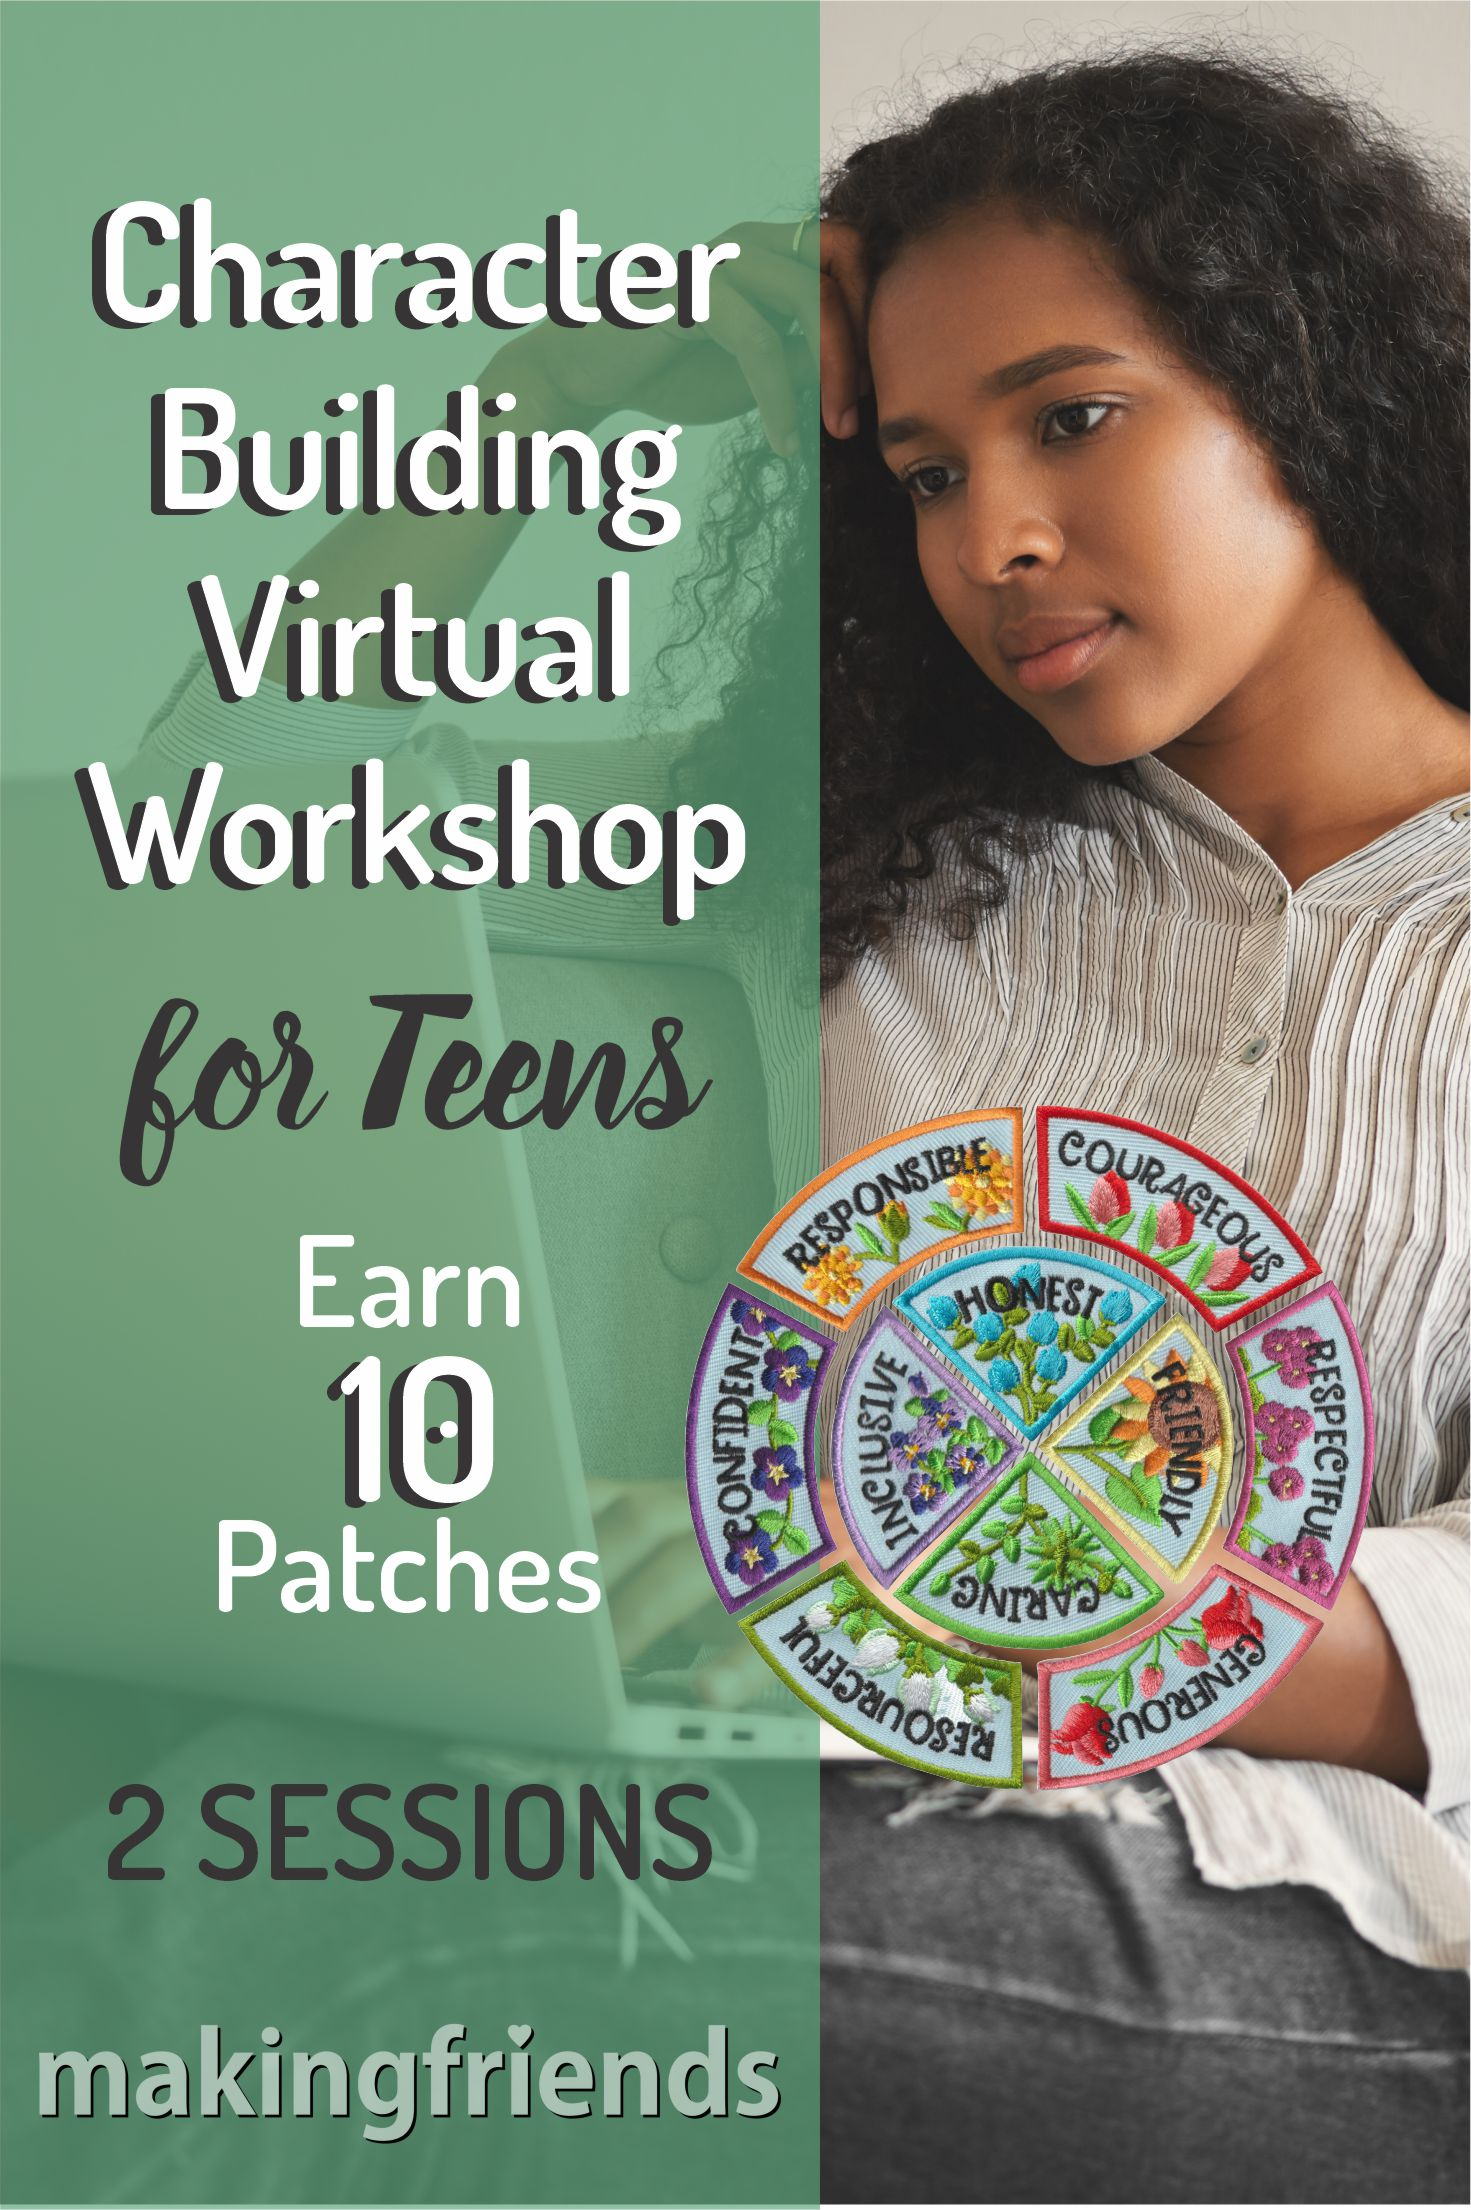 One hour workshop, where Teens revisit the Girl Scout law with contemporary topics that are engaging for them! Optional supplies are available! #girlscouts #onlineclass #virtualclass #characterbuilding #teenworkshop #onlineworkshop #gs #patches #character #lifeskills via @gsleader411